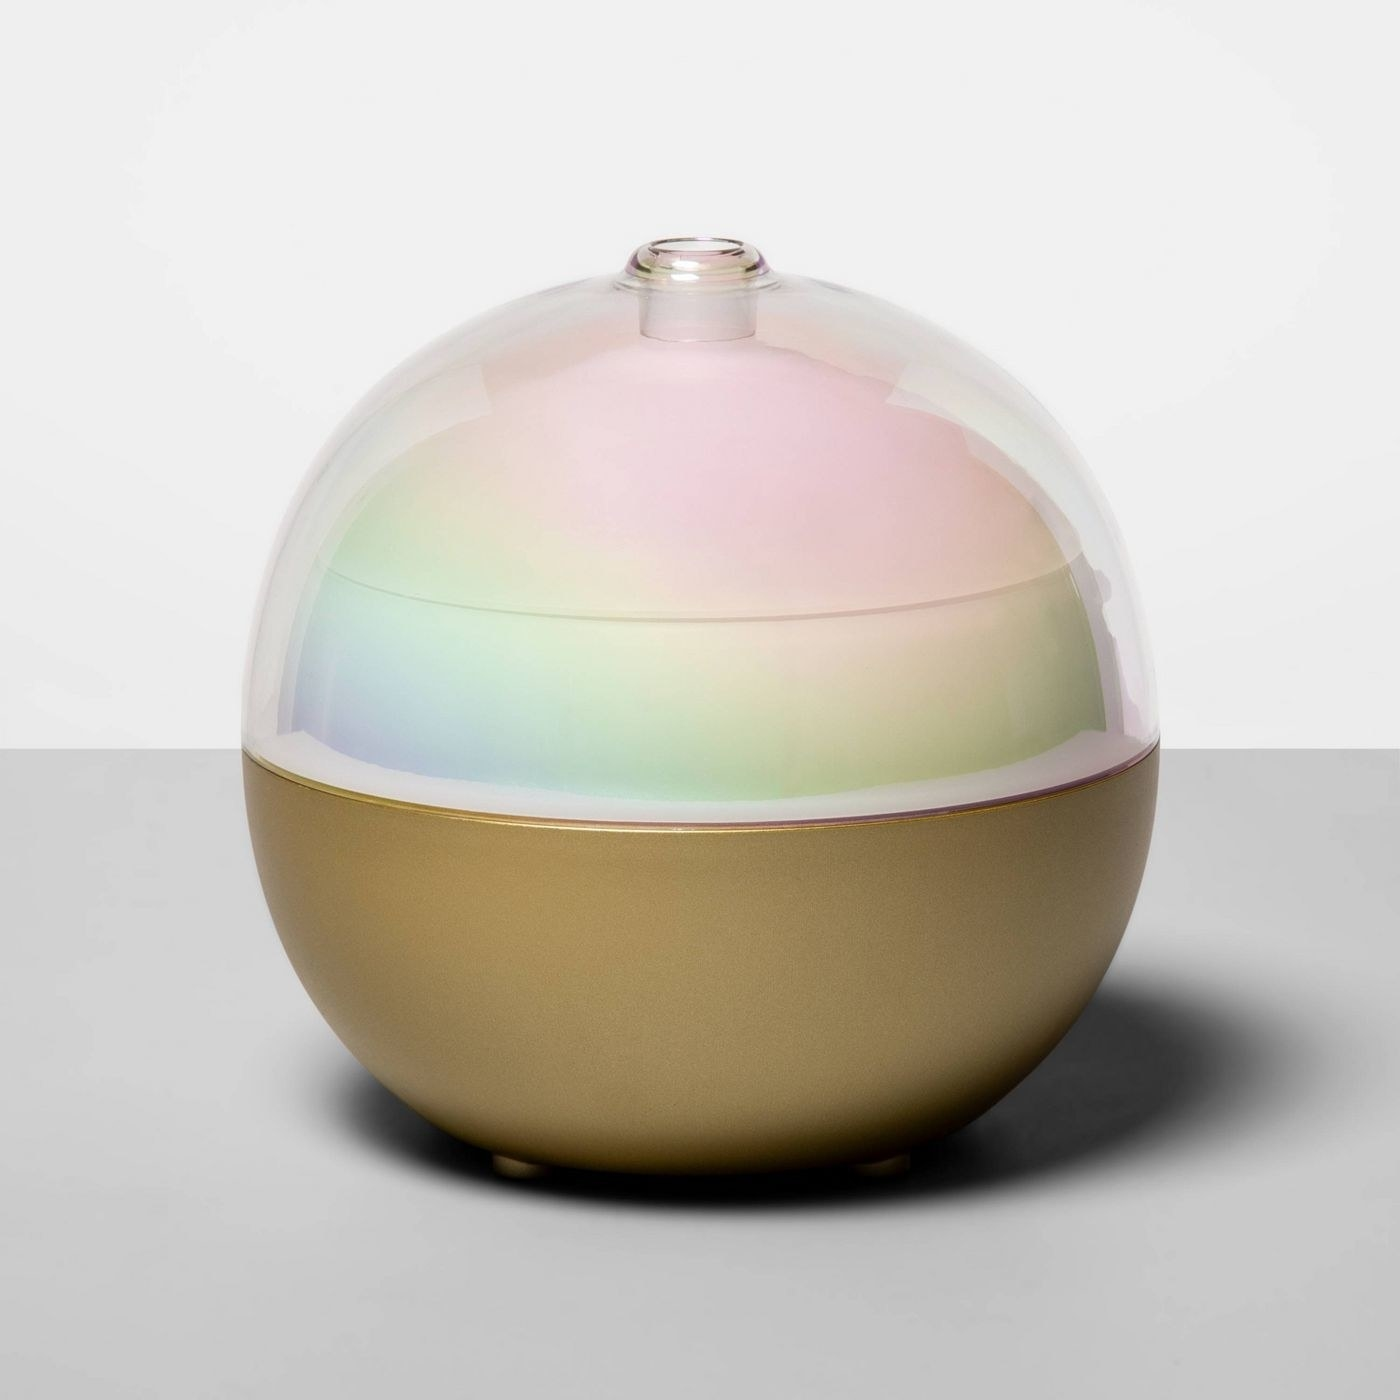 Thecolor-changing essential oil diffuser